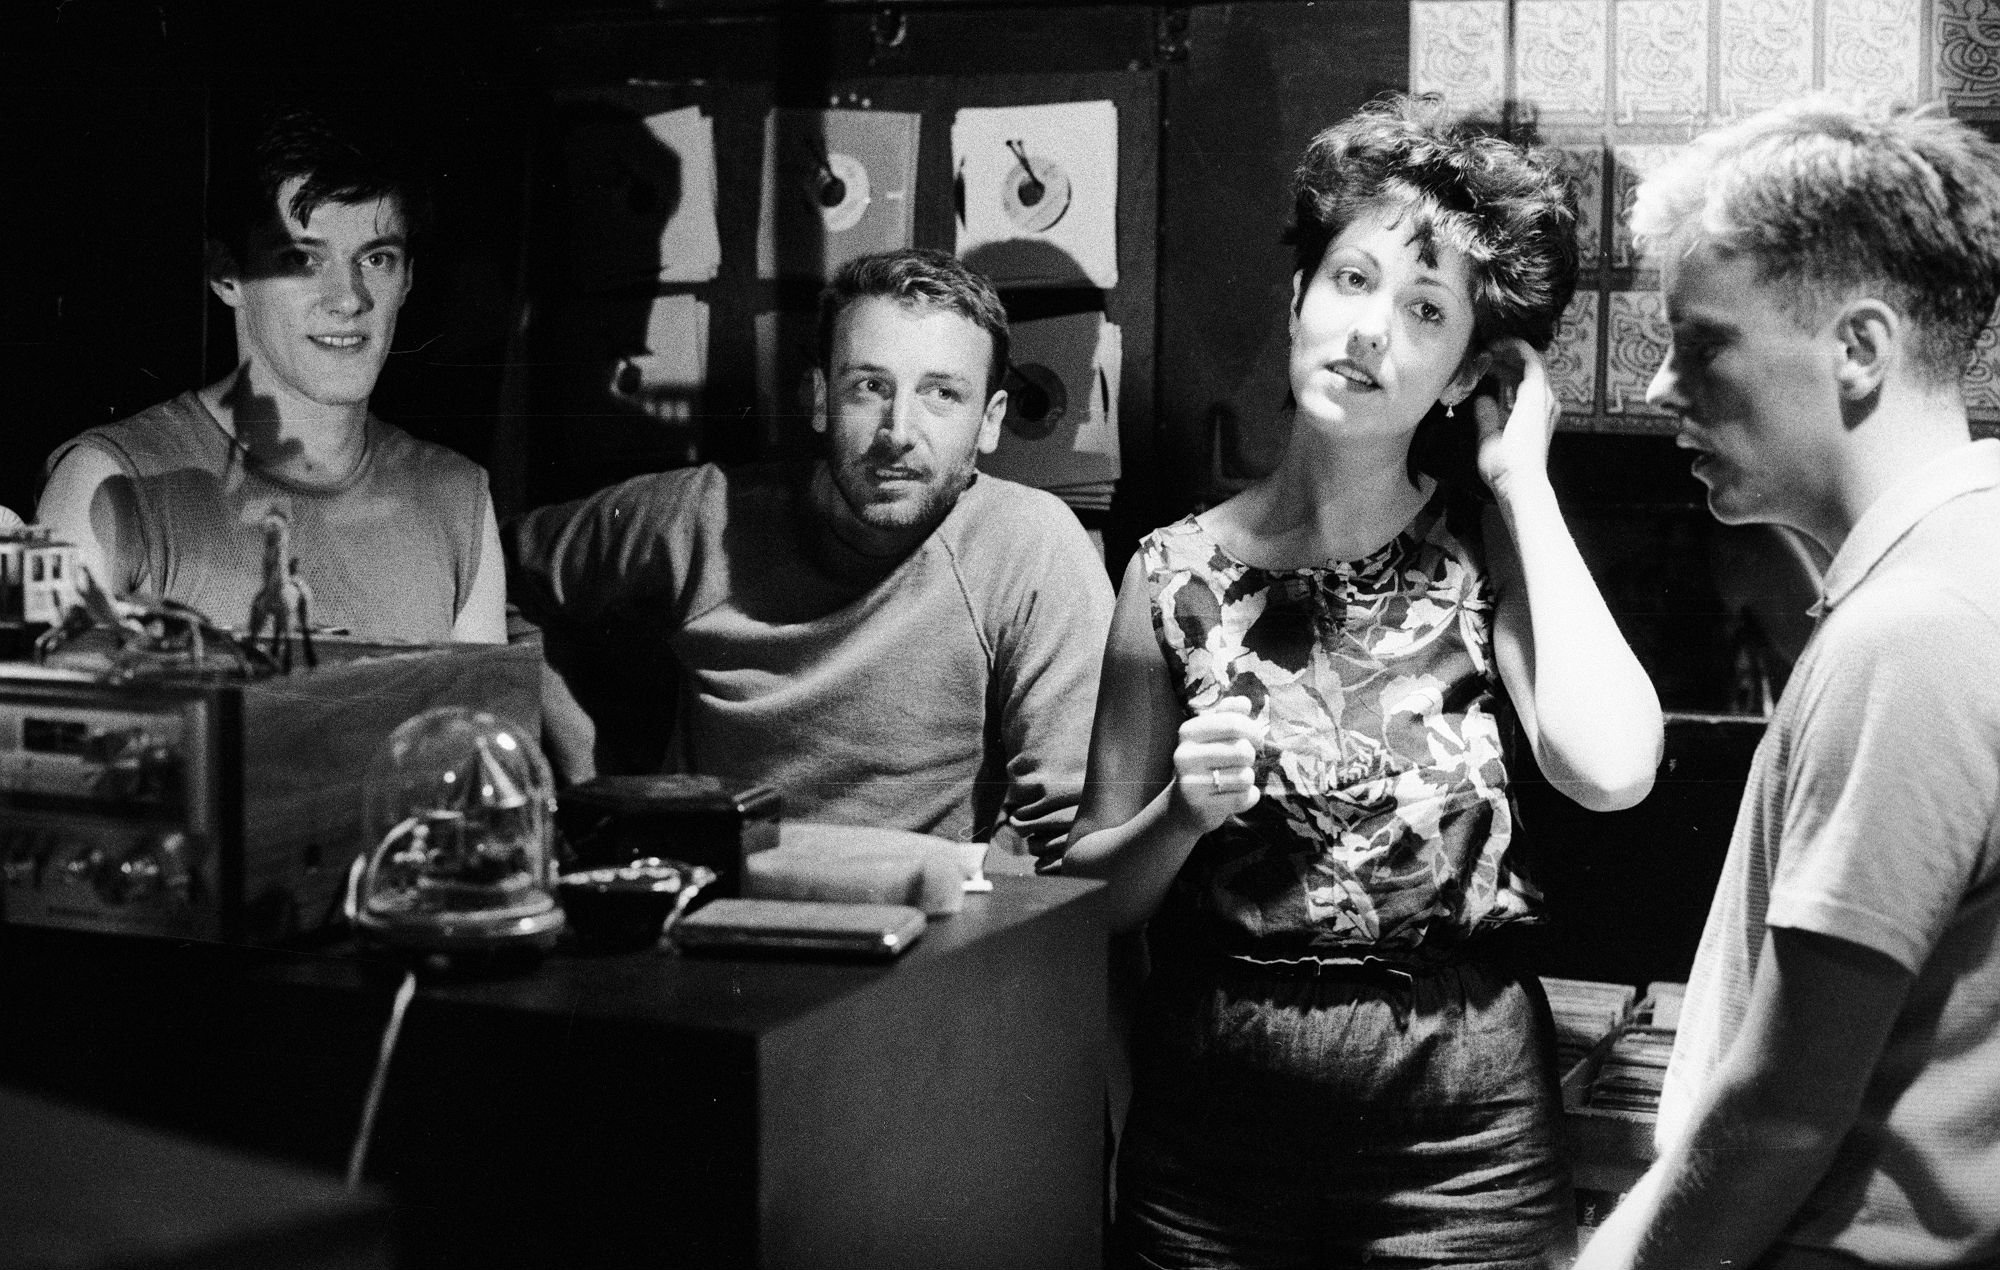 New Order in New York in 1982. Credit: Kevin Cummins/Press